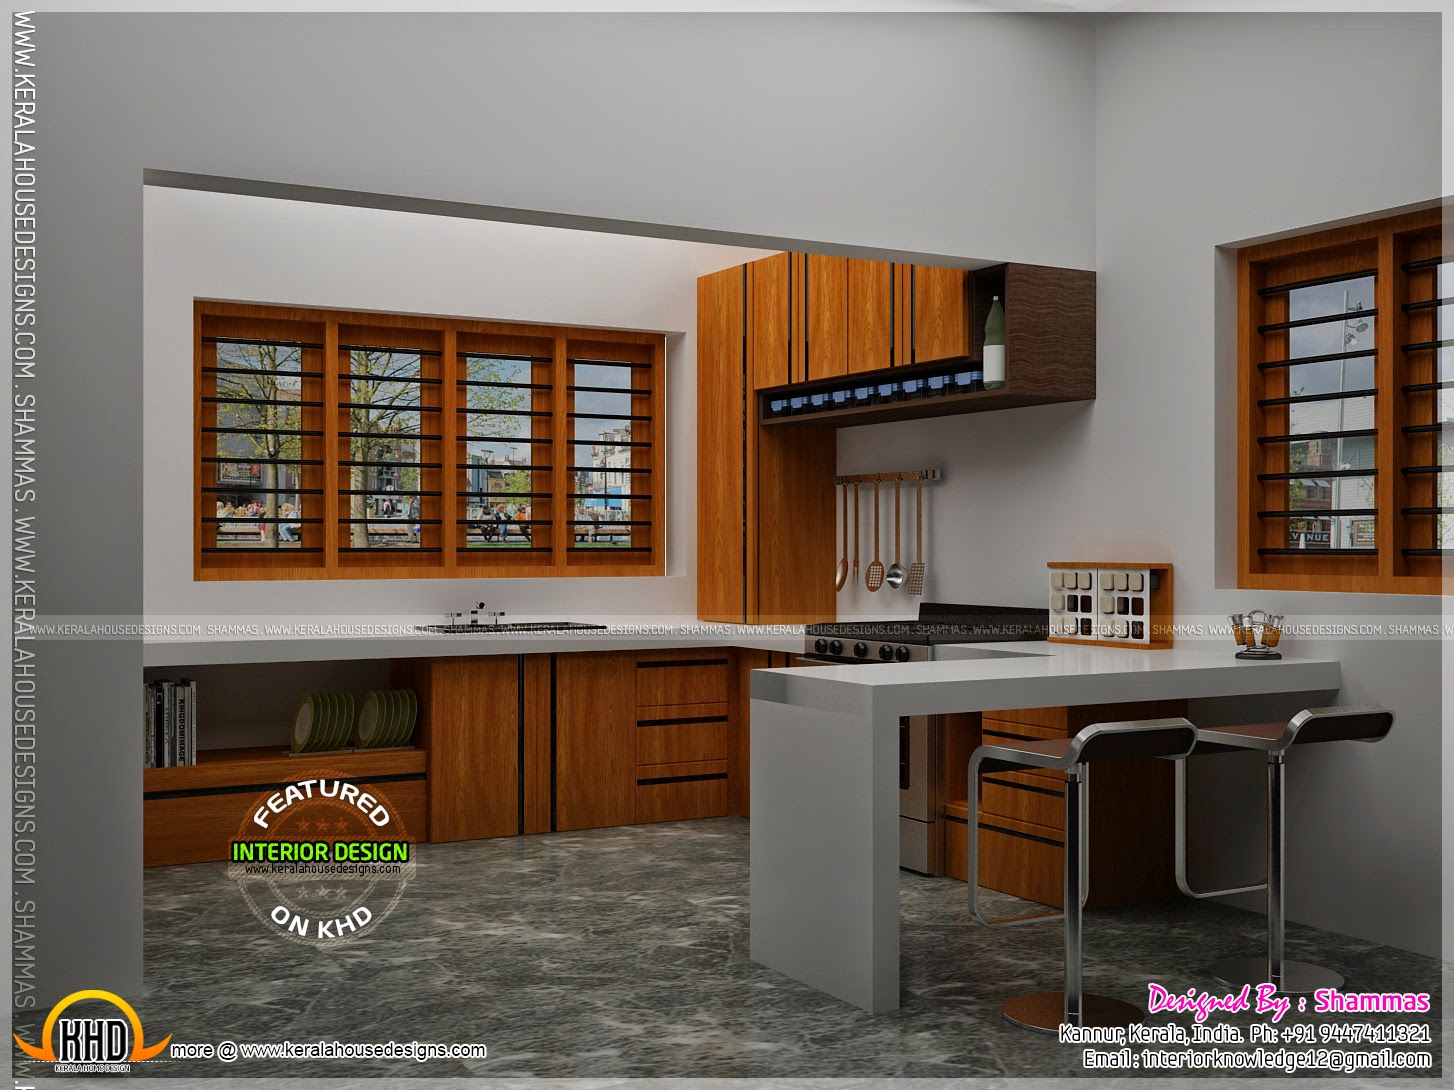 Modern Kerala Houses Interior Kitchen Styles